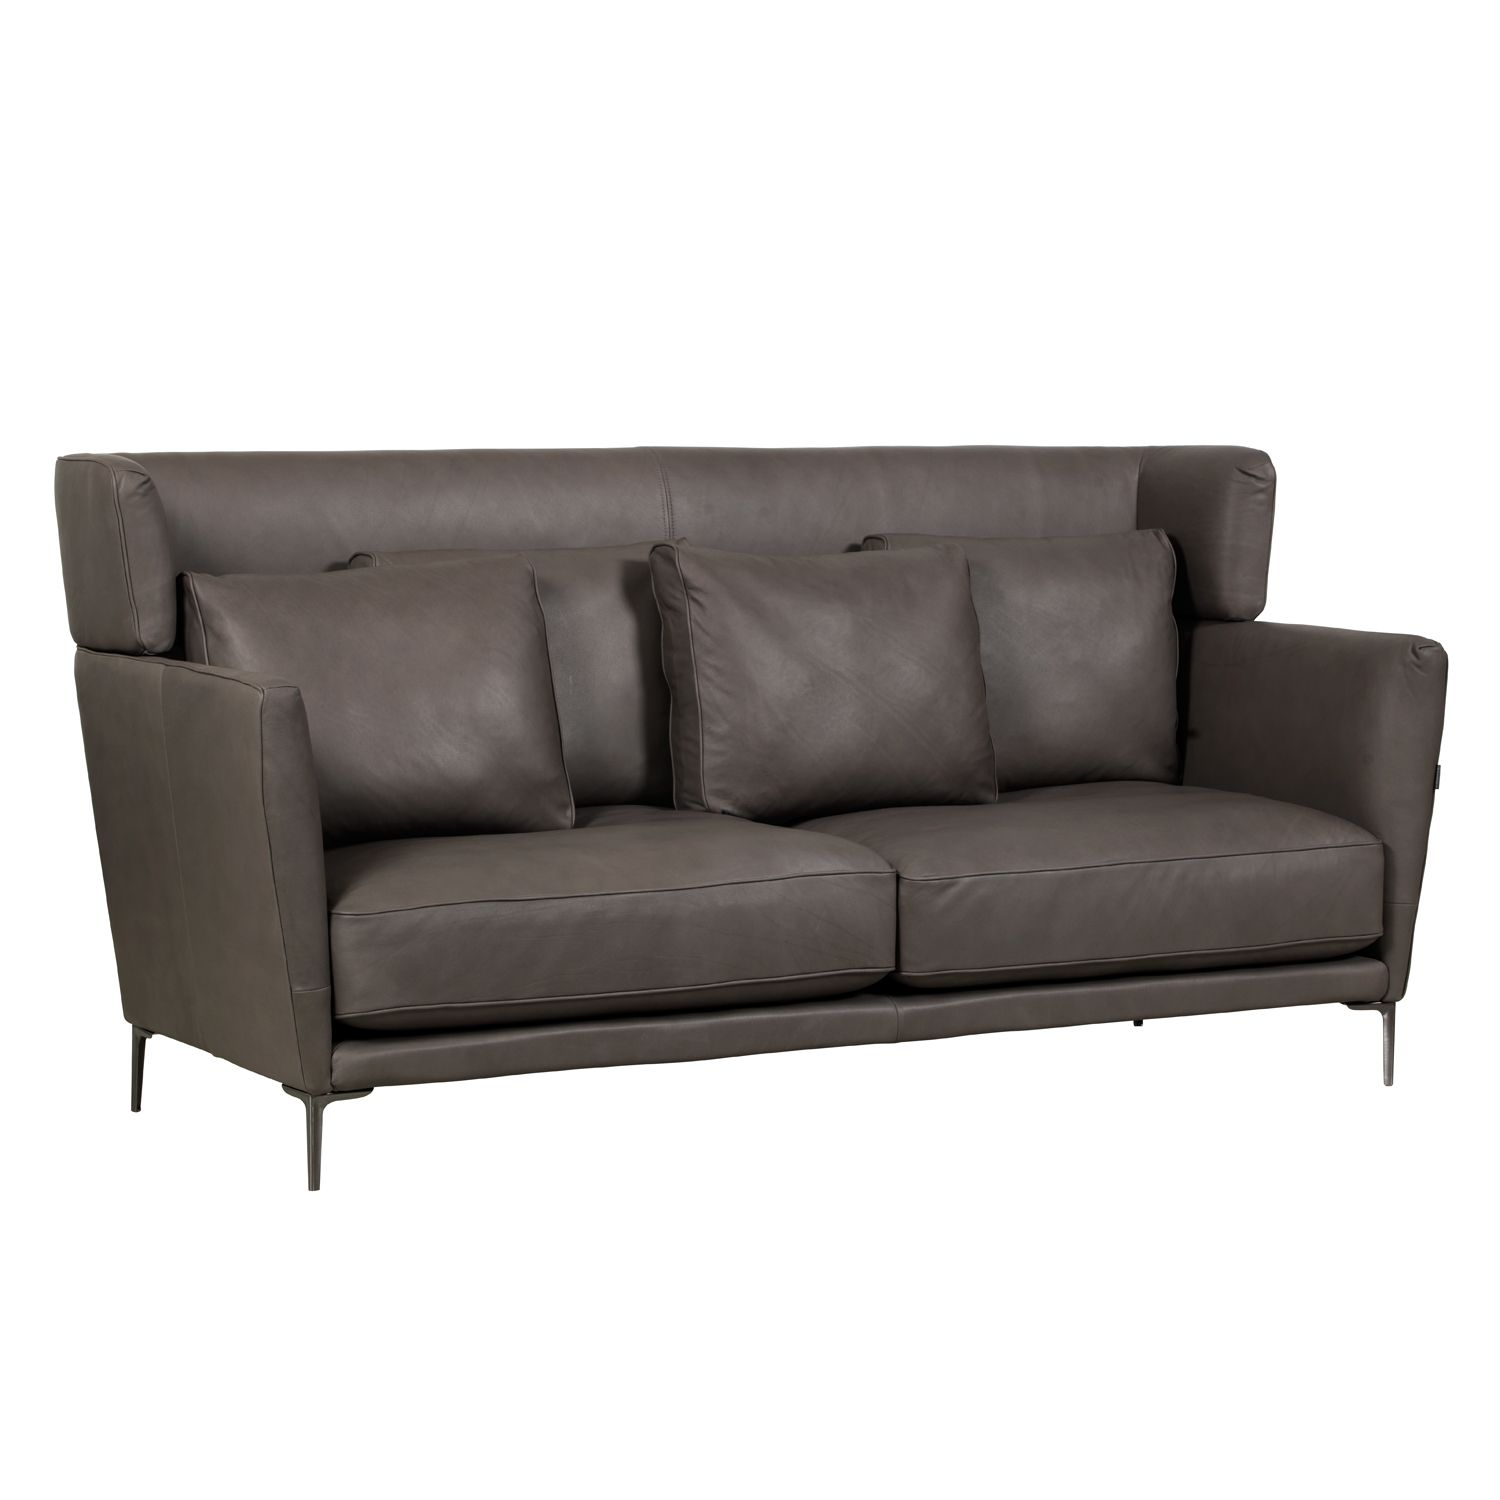 Scandinavian Sofas Uk Turner Sofa Mad About Style The